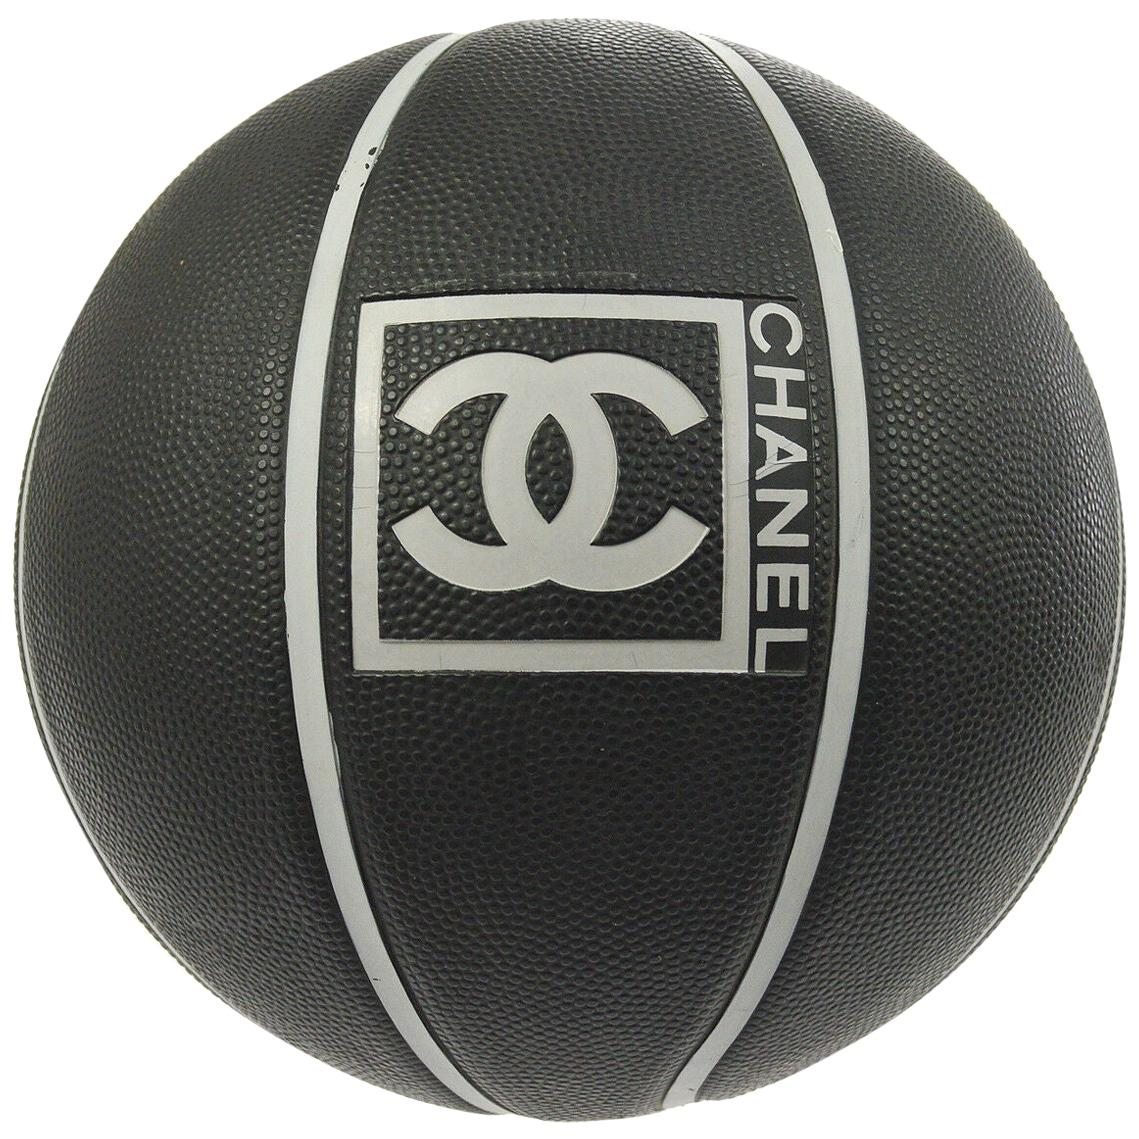 Chanel Black Gray Collectible Novelty Toy Game Sport Men's Women's Basketball